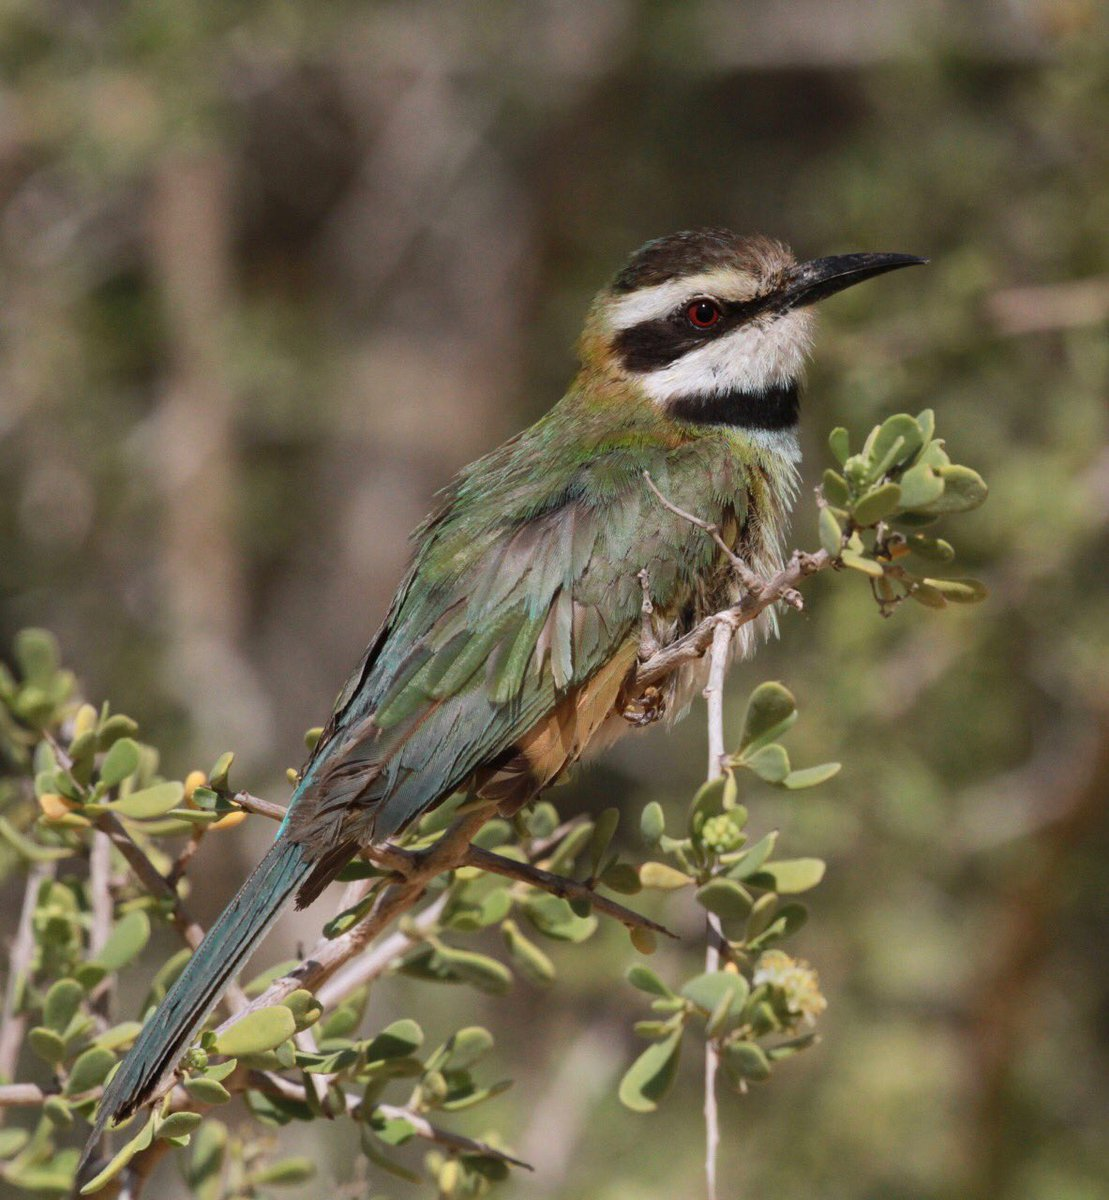 White-throated Bee-eater / Guêpier à gorge blanche (Merops albicollis), Dakhla bay, 4 March 2017 (Dan Brown)